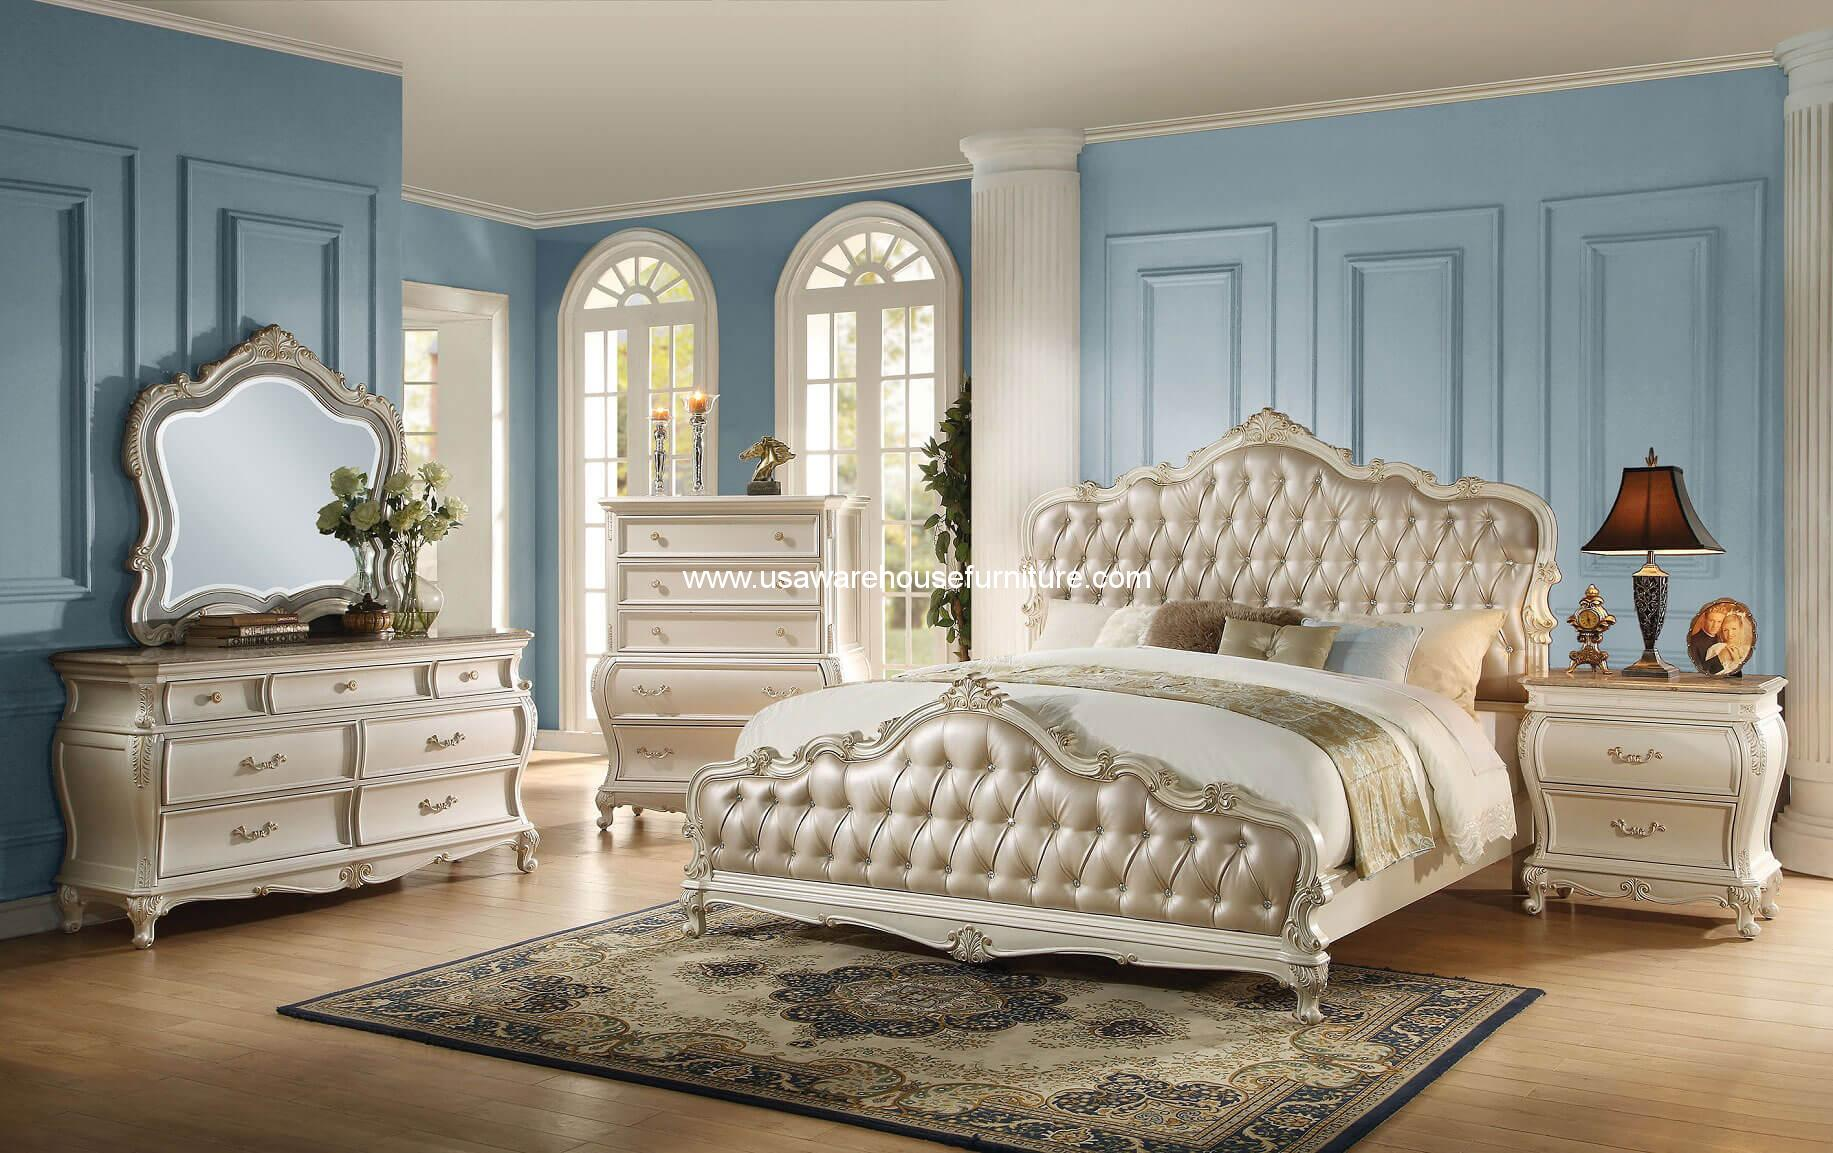 Pearl White Finish 4 Piece Bedroom Set USA Warehouse Furniture